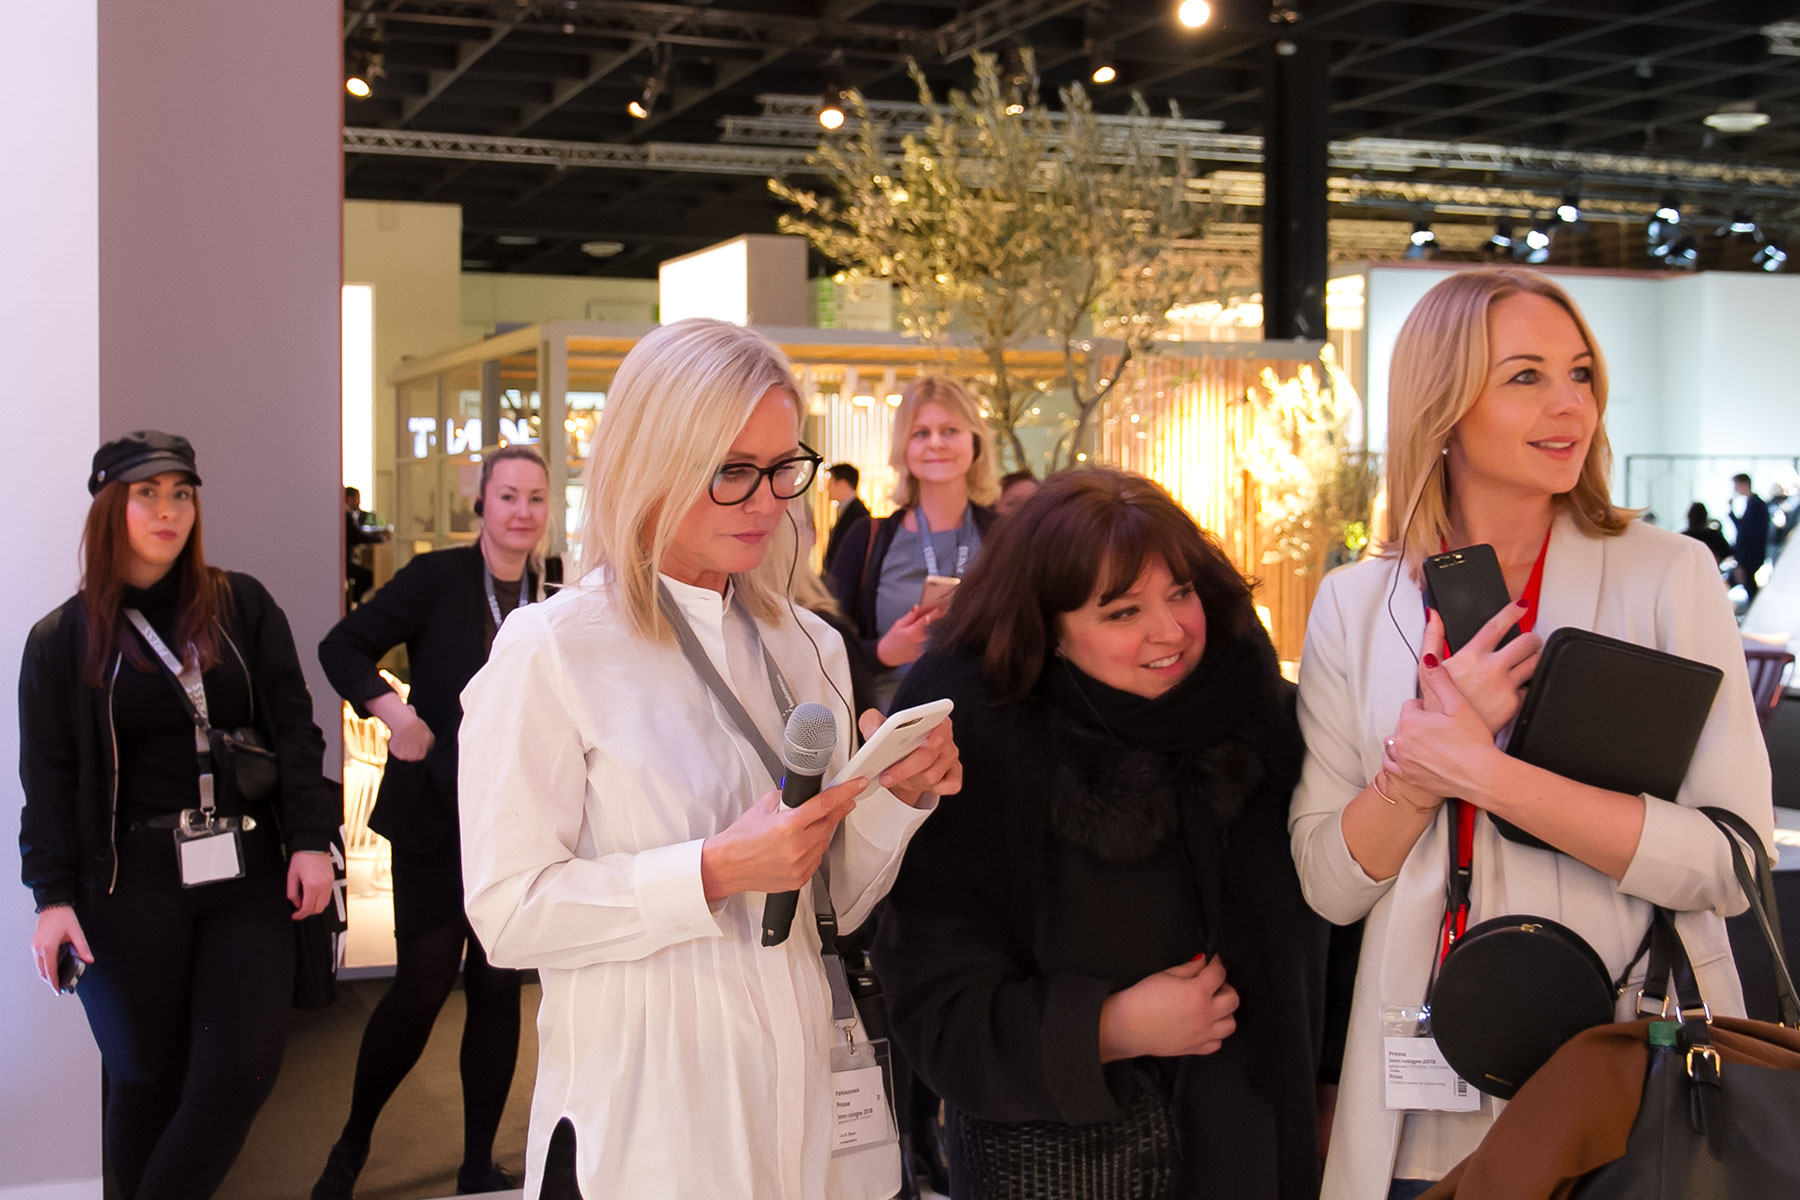 bloggers fair trade tour, imm cologne trade fair 2018, blog post lifetime-pieces.com